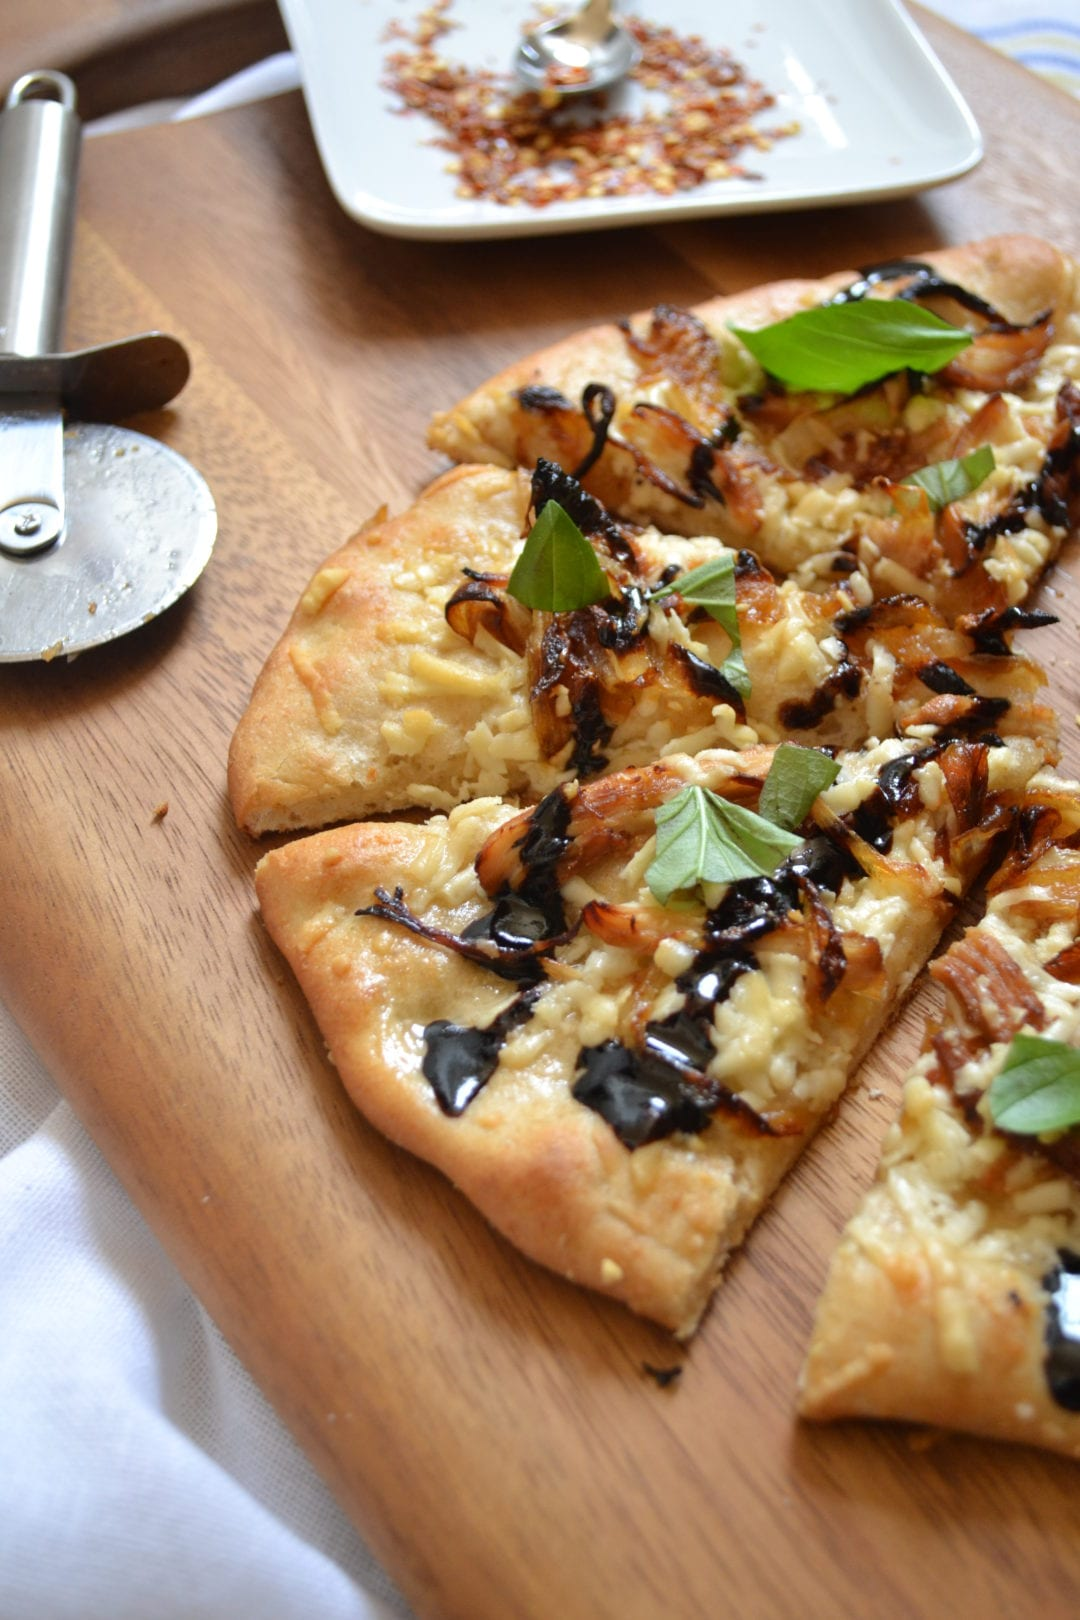 Balsamic Glazed Chicken And Caramelized Onion Pizza From